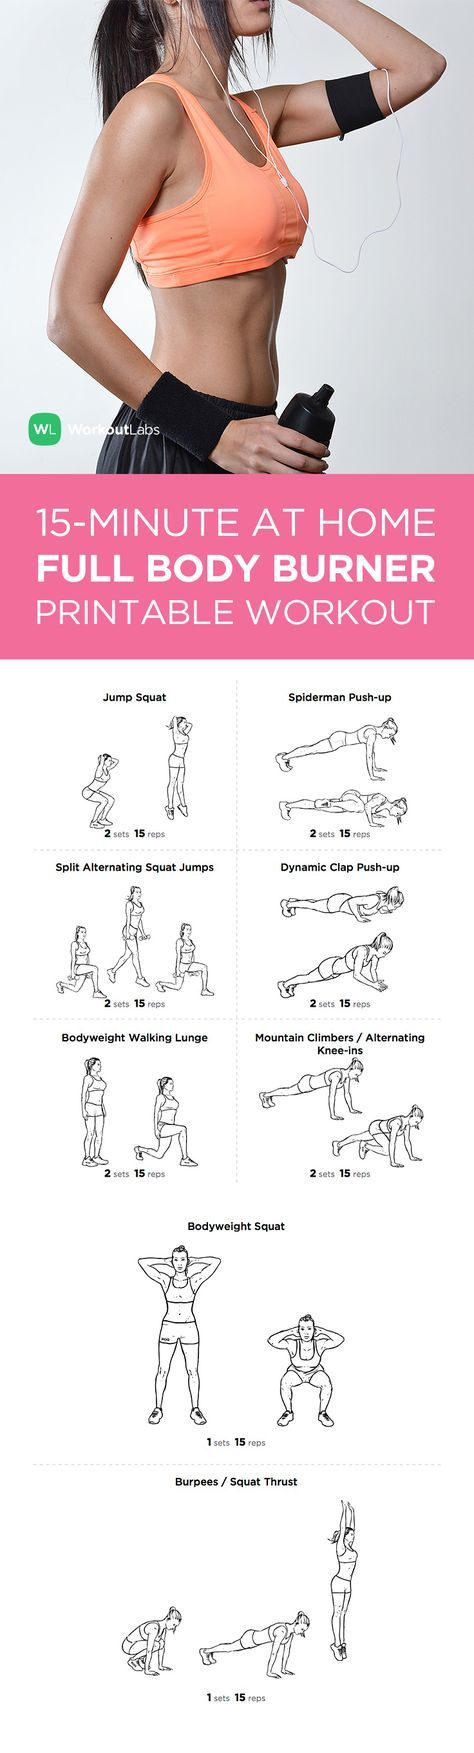 Workout Plan For Men At Home Best 25 Home Workout For Men Ideas On Pinterest  Ab Workout Men